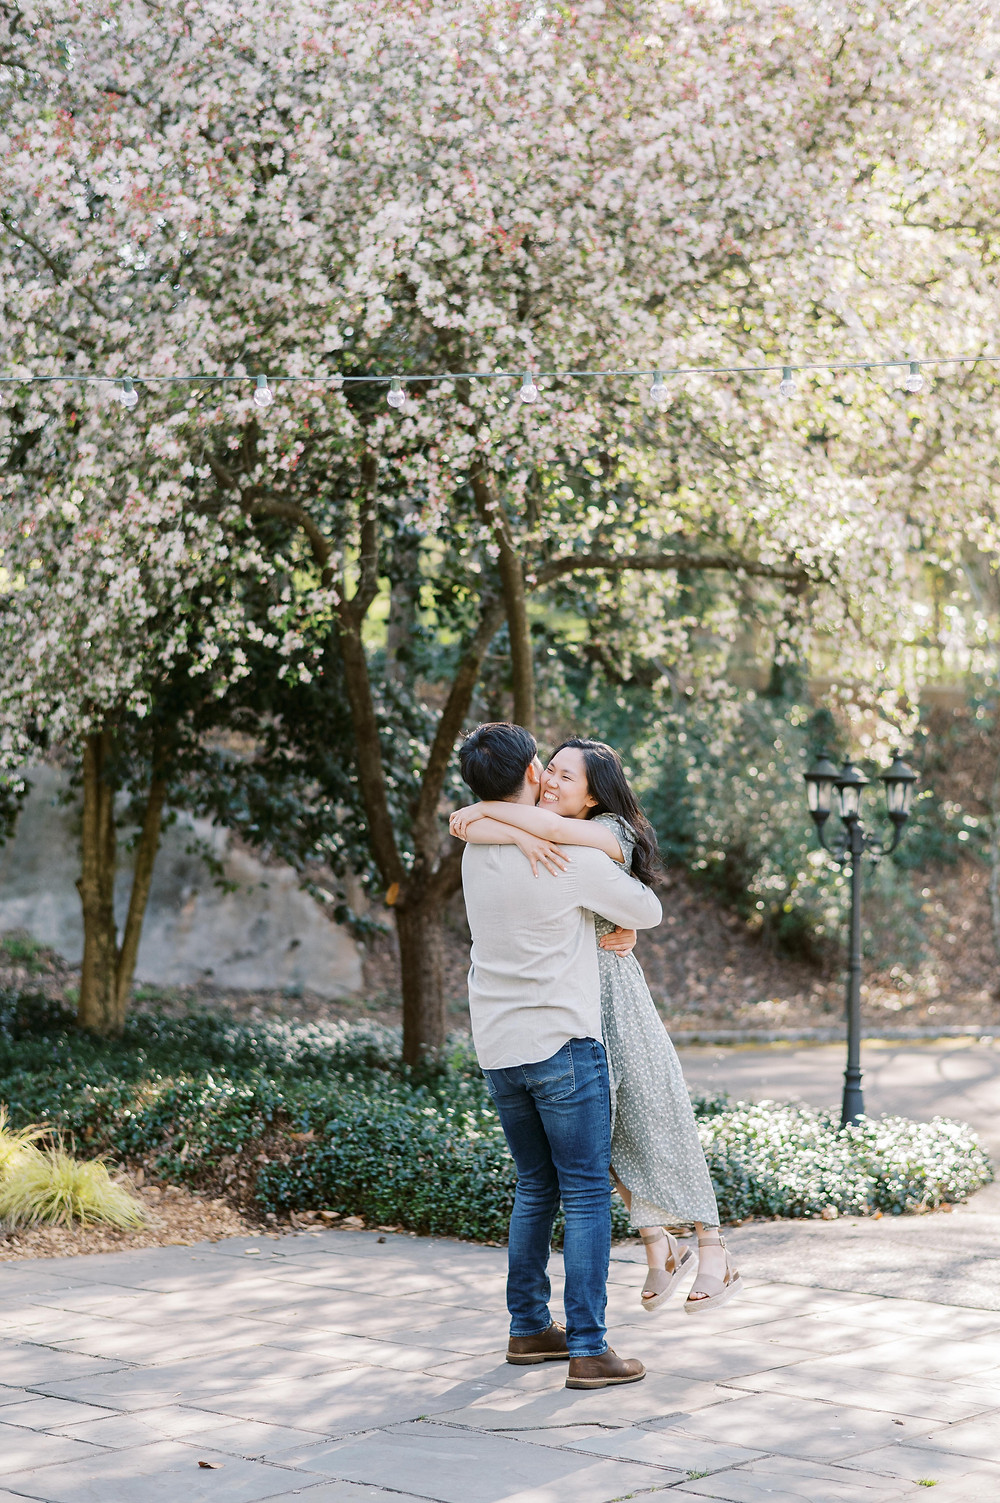 A Whimsical Cator Woolford Garden Engagement Session in the Spring